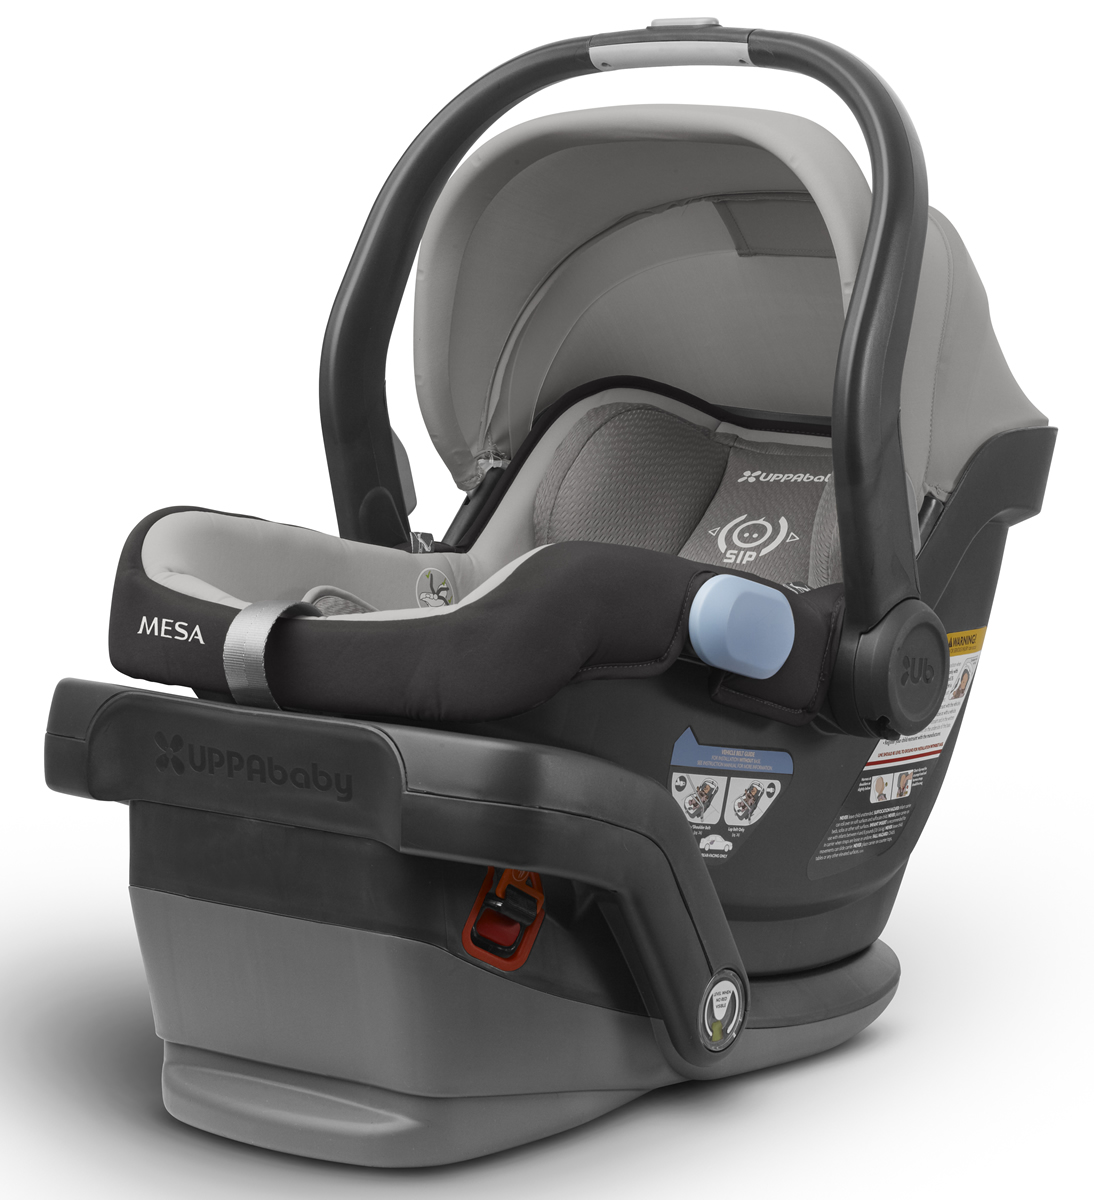 Uppa Baby 2017 / 2018 MESA Infant Car Seat - Pascal (Grey)